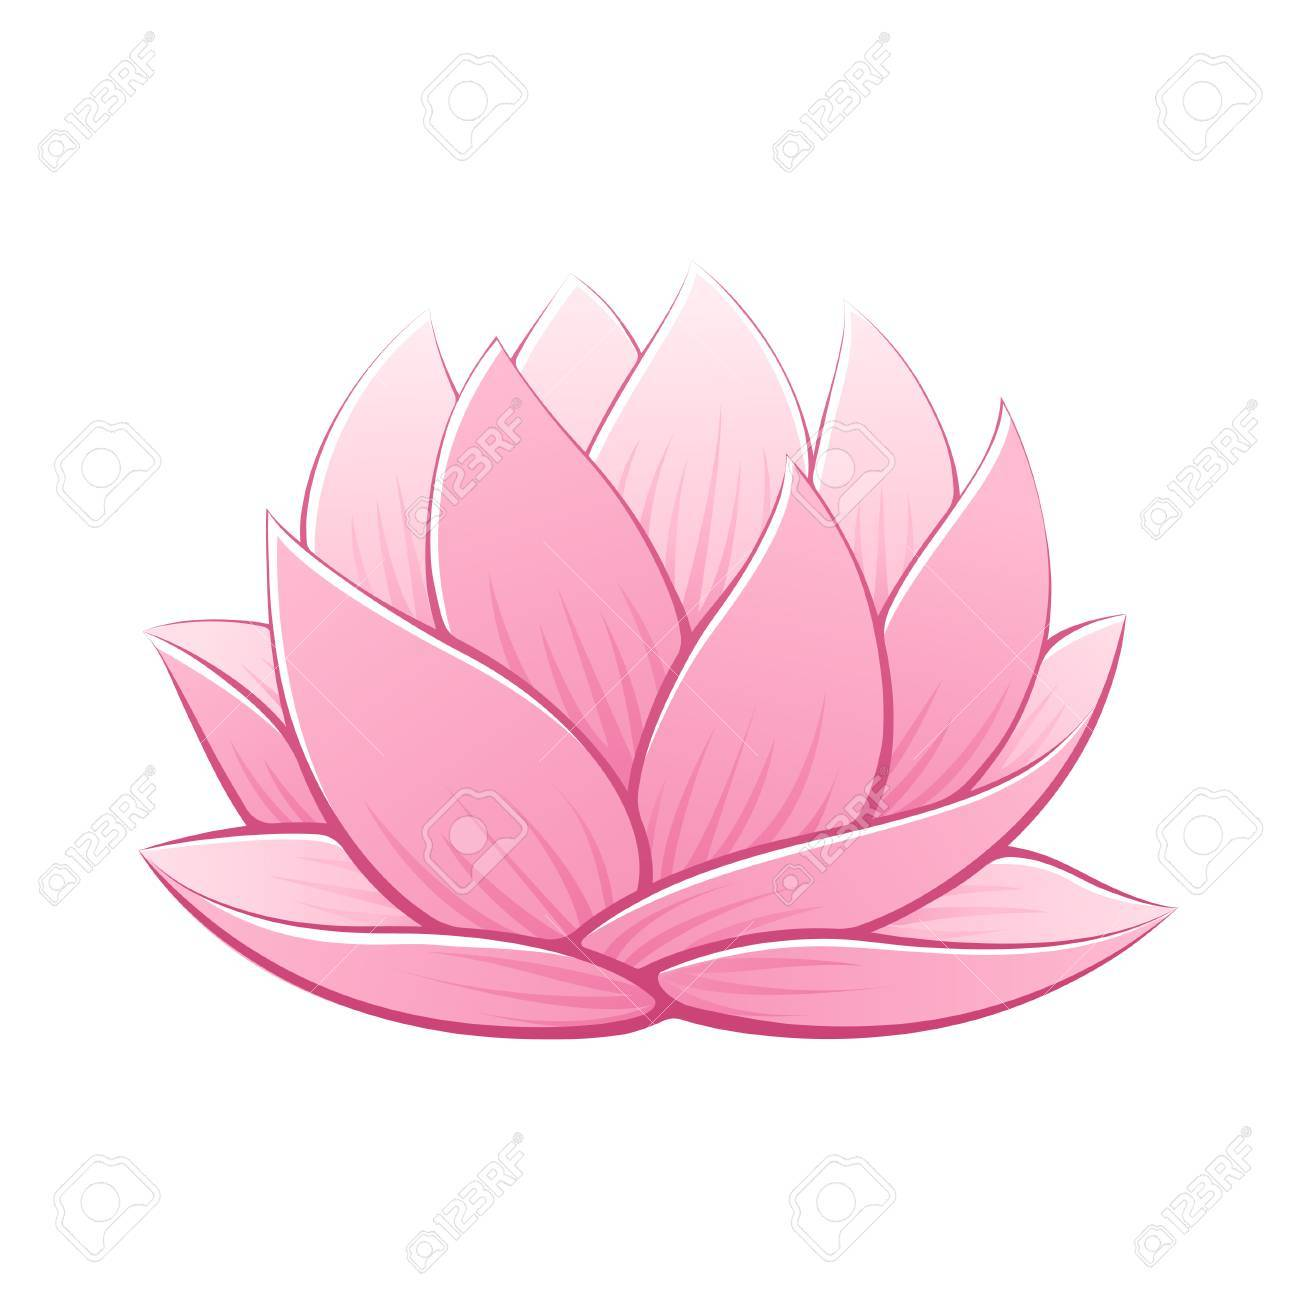 Illustration Vectorielle De Fleur De Lotus Rose Beau Dessin